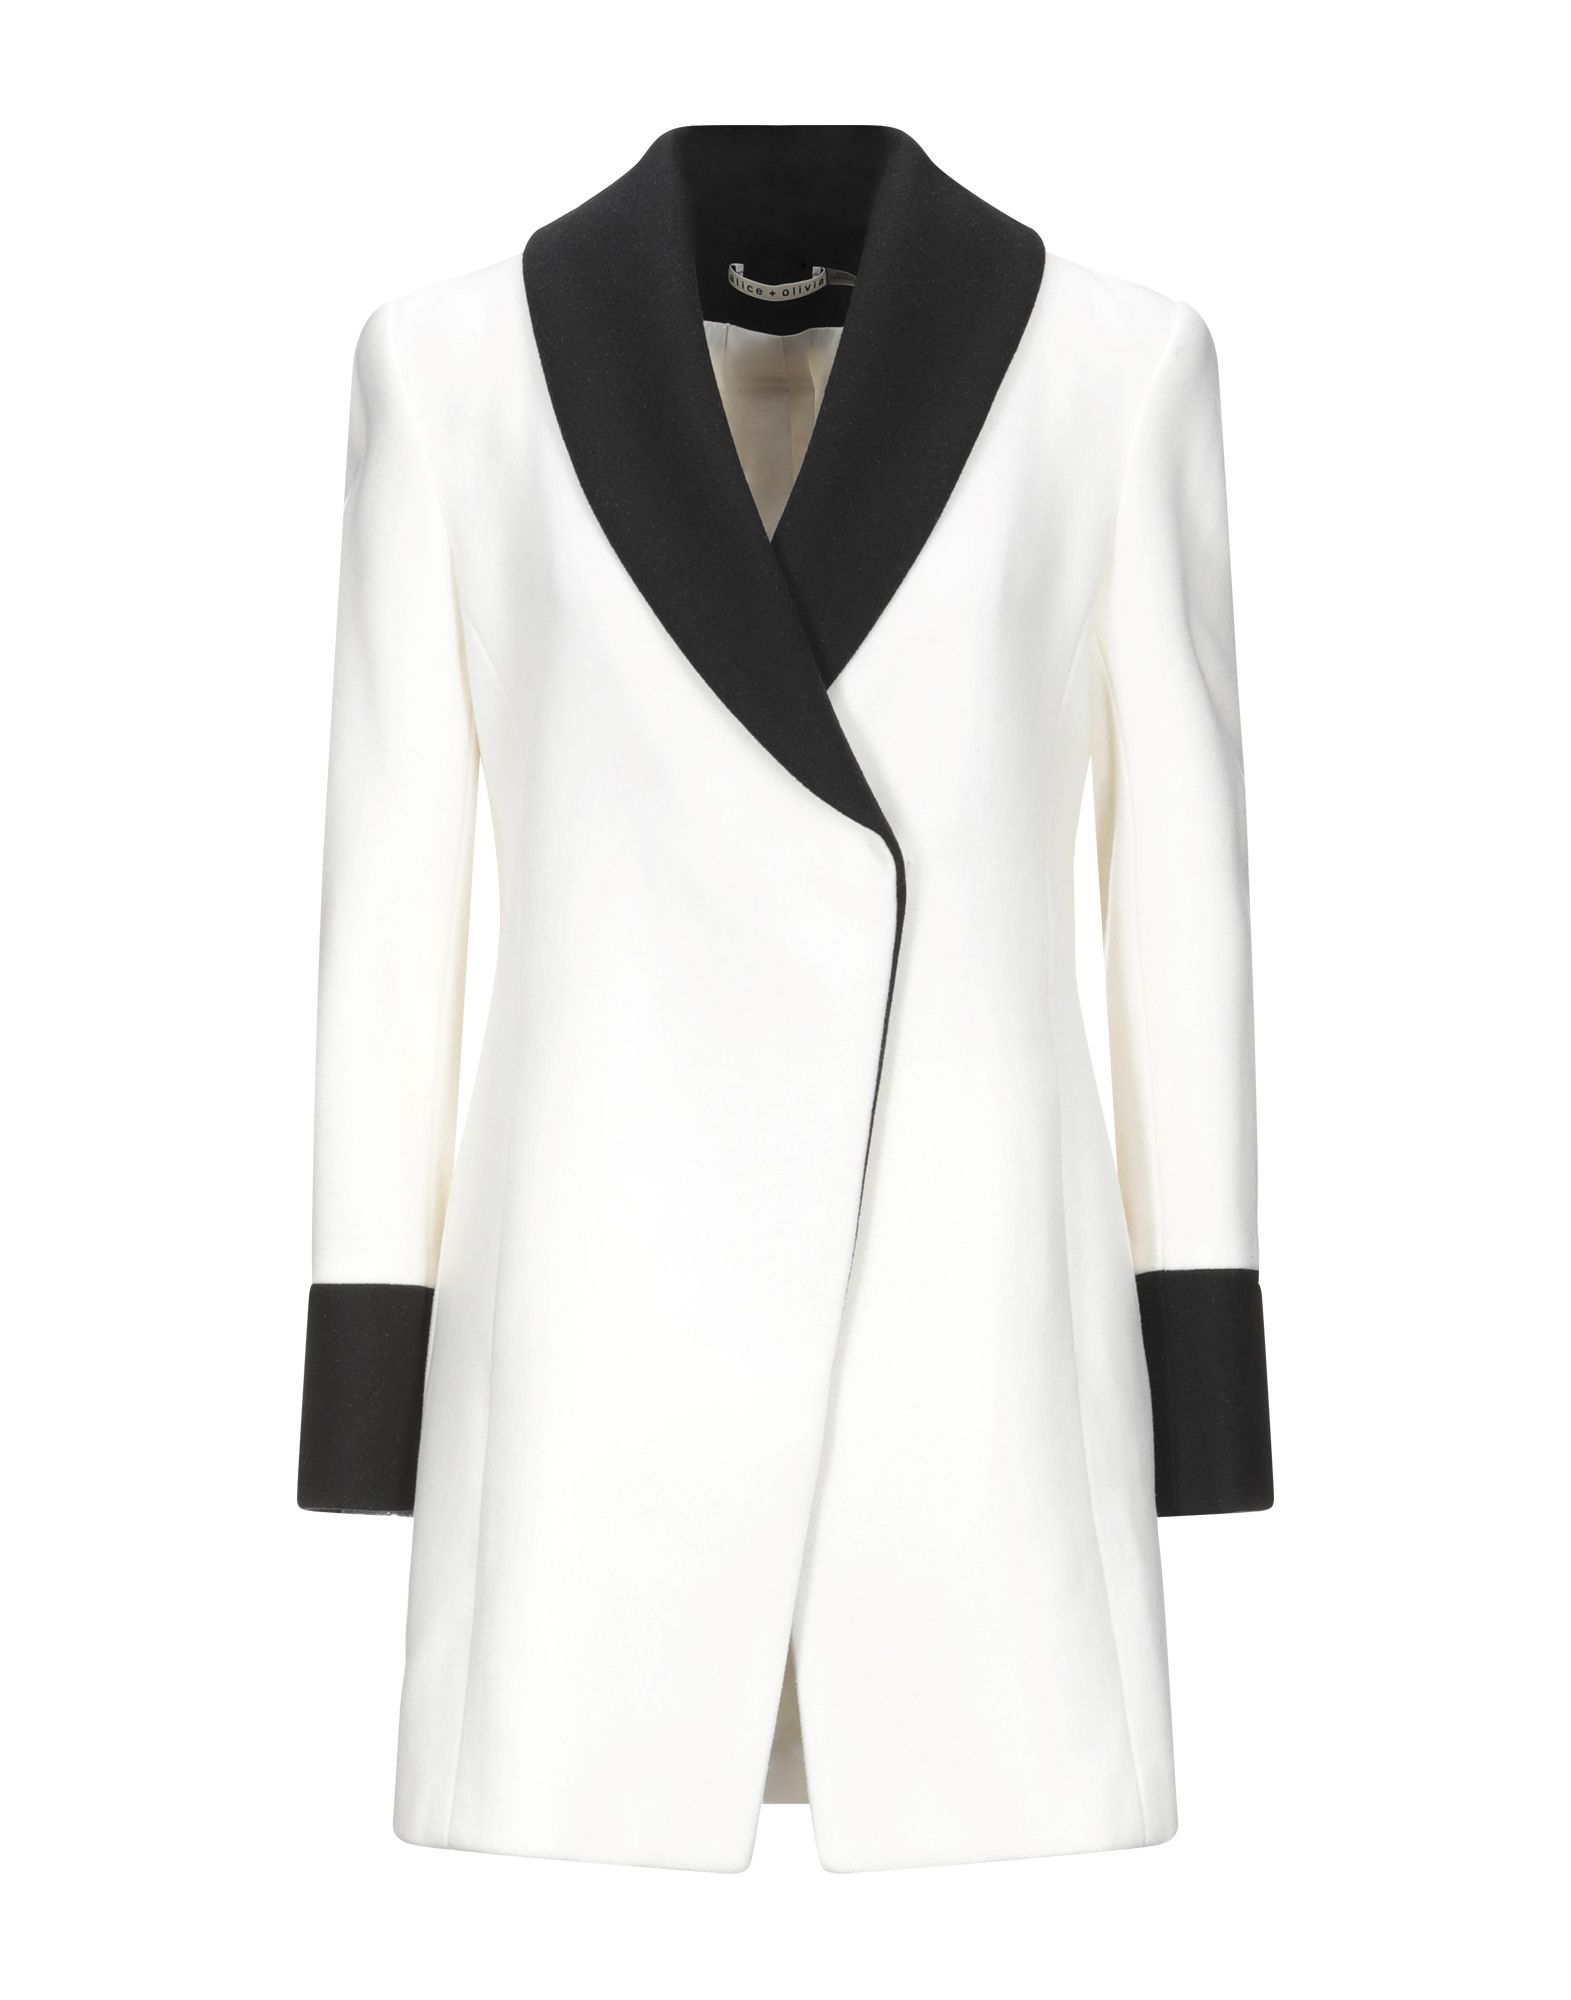 ALICE + OLIVIA Coats. baize, no appliqués, two-tone, single-breasted, snap buttons fastening, lapel collar, multipockets, long sleeves, fully lined, large sized. 80% Wool, 20% Nylon